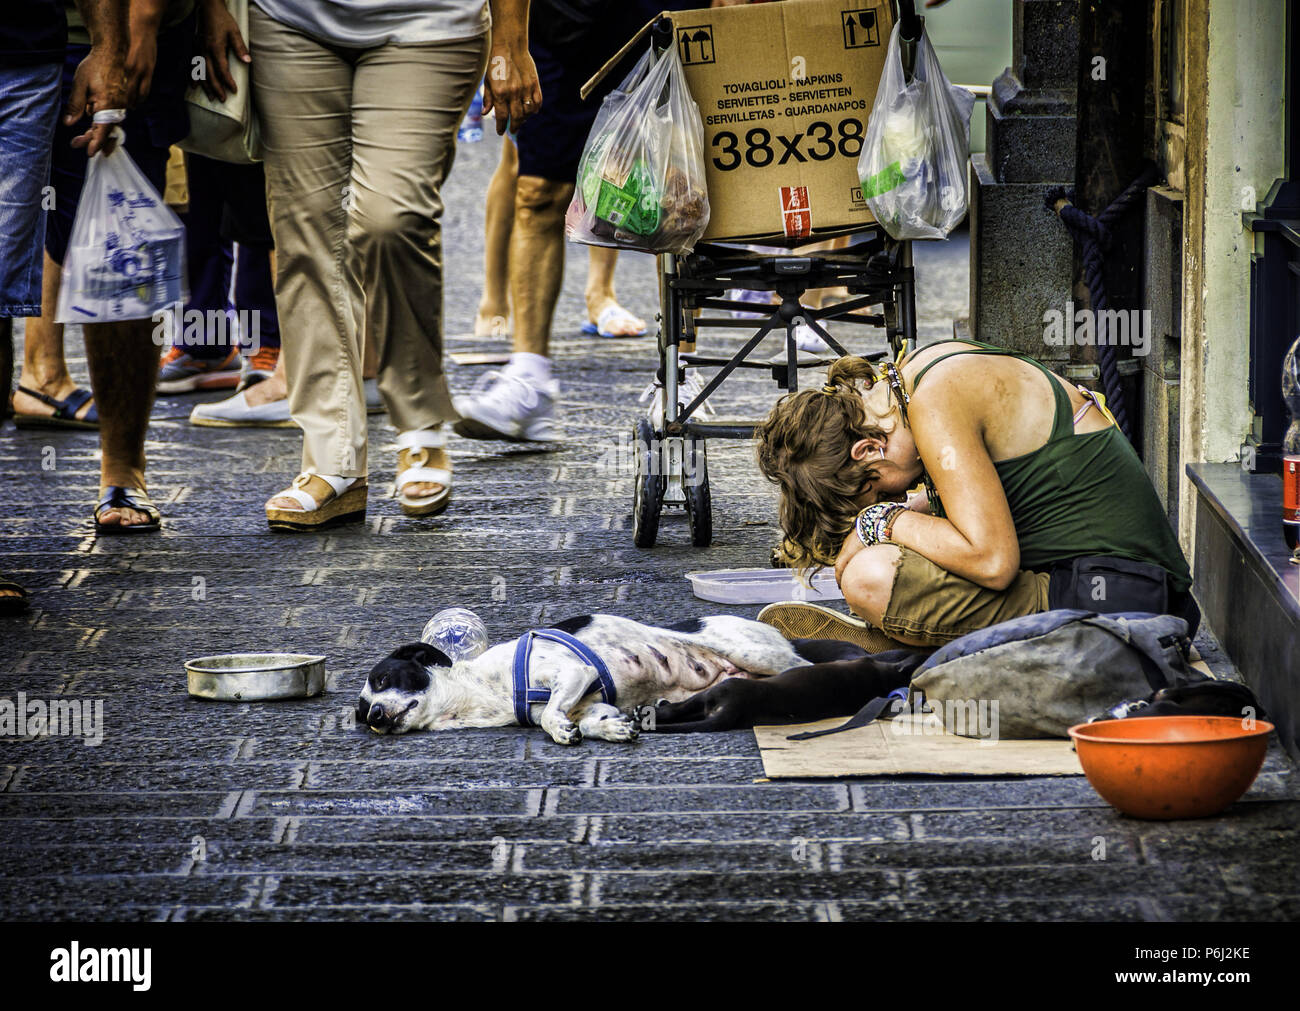 23 August 2014 - Sicily, Italy. Poor young homeless woman with the dog,  sitting and begging for money in the busy street of the coastal city of Catania - Stock Image